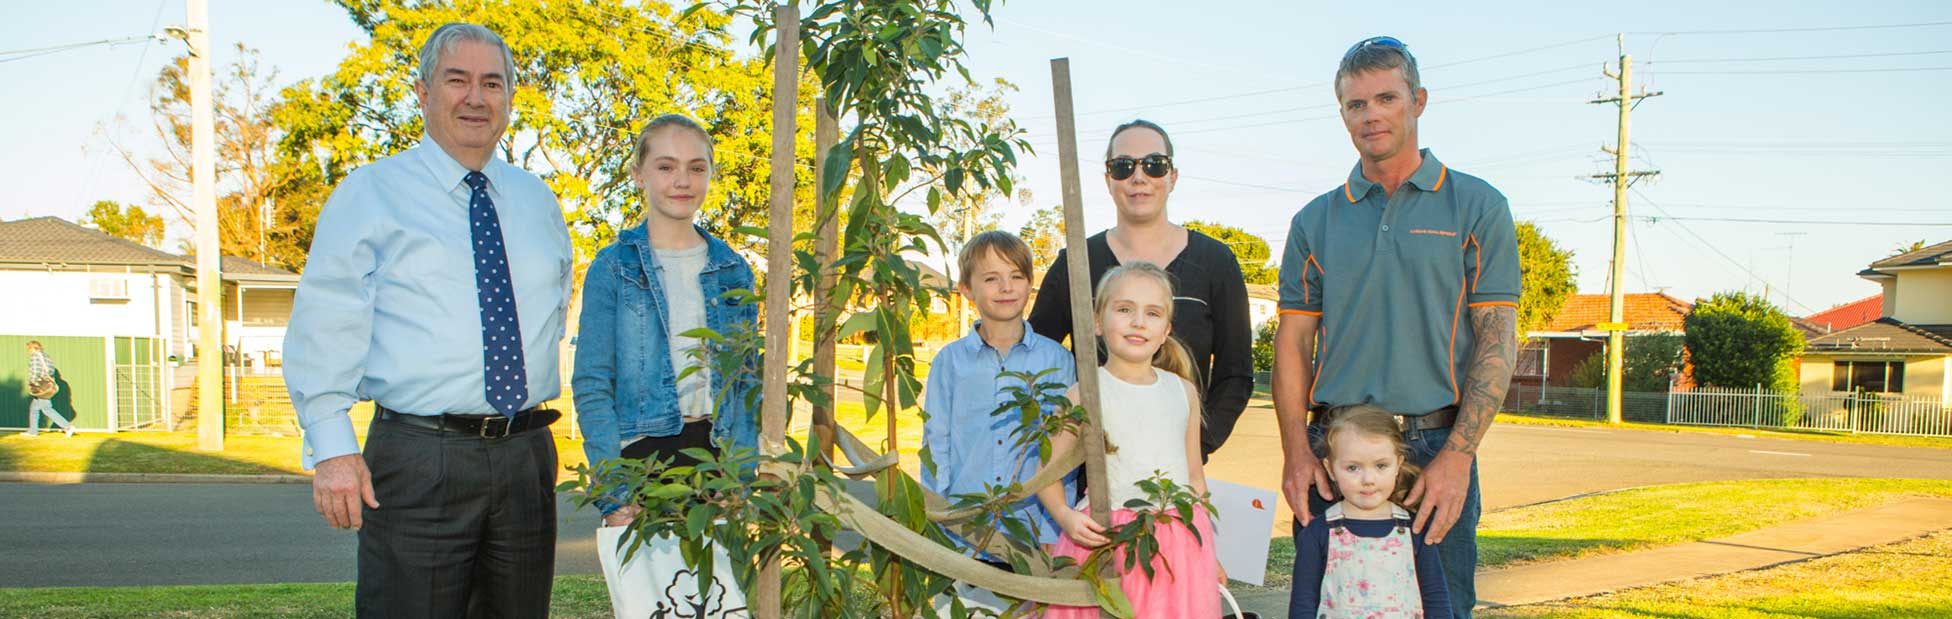 Penrith Mayor Ross Fowler OAM with the Moy family of St Marys who are excited about receiving their street tree.